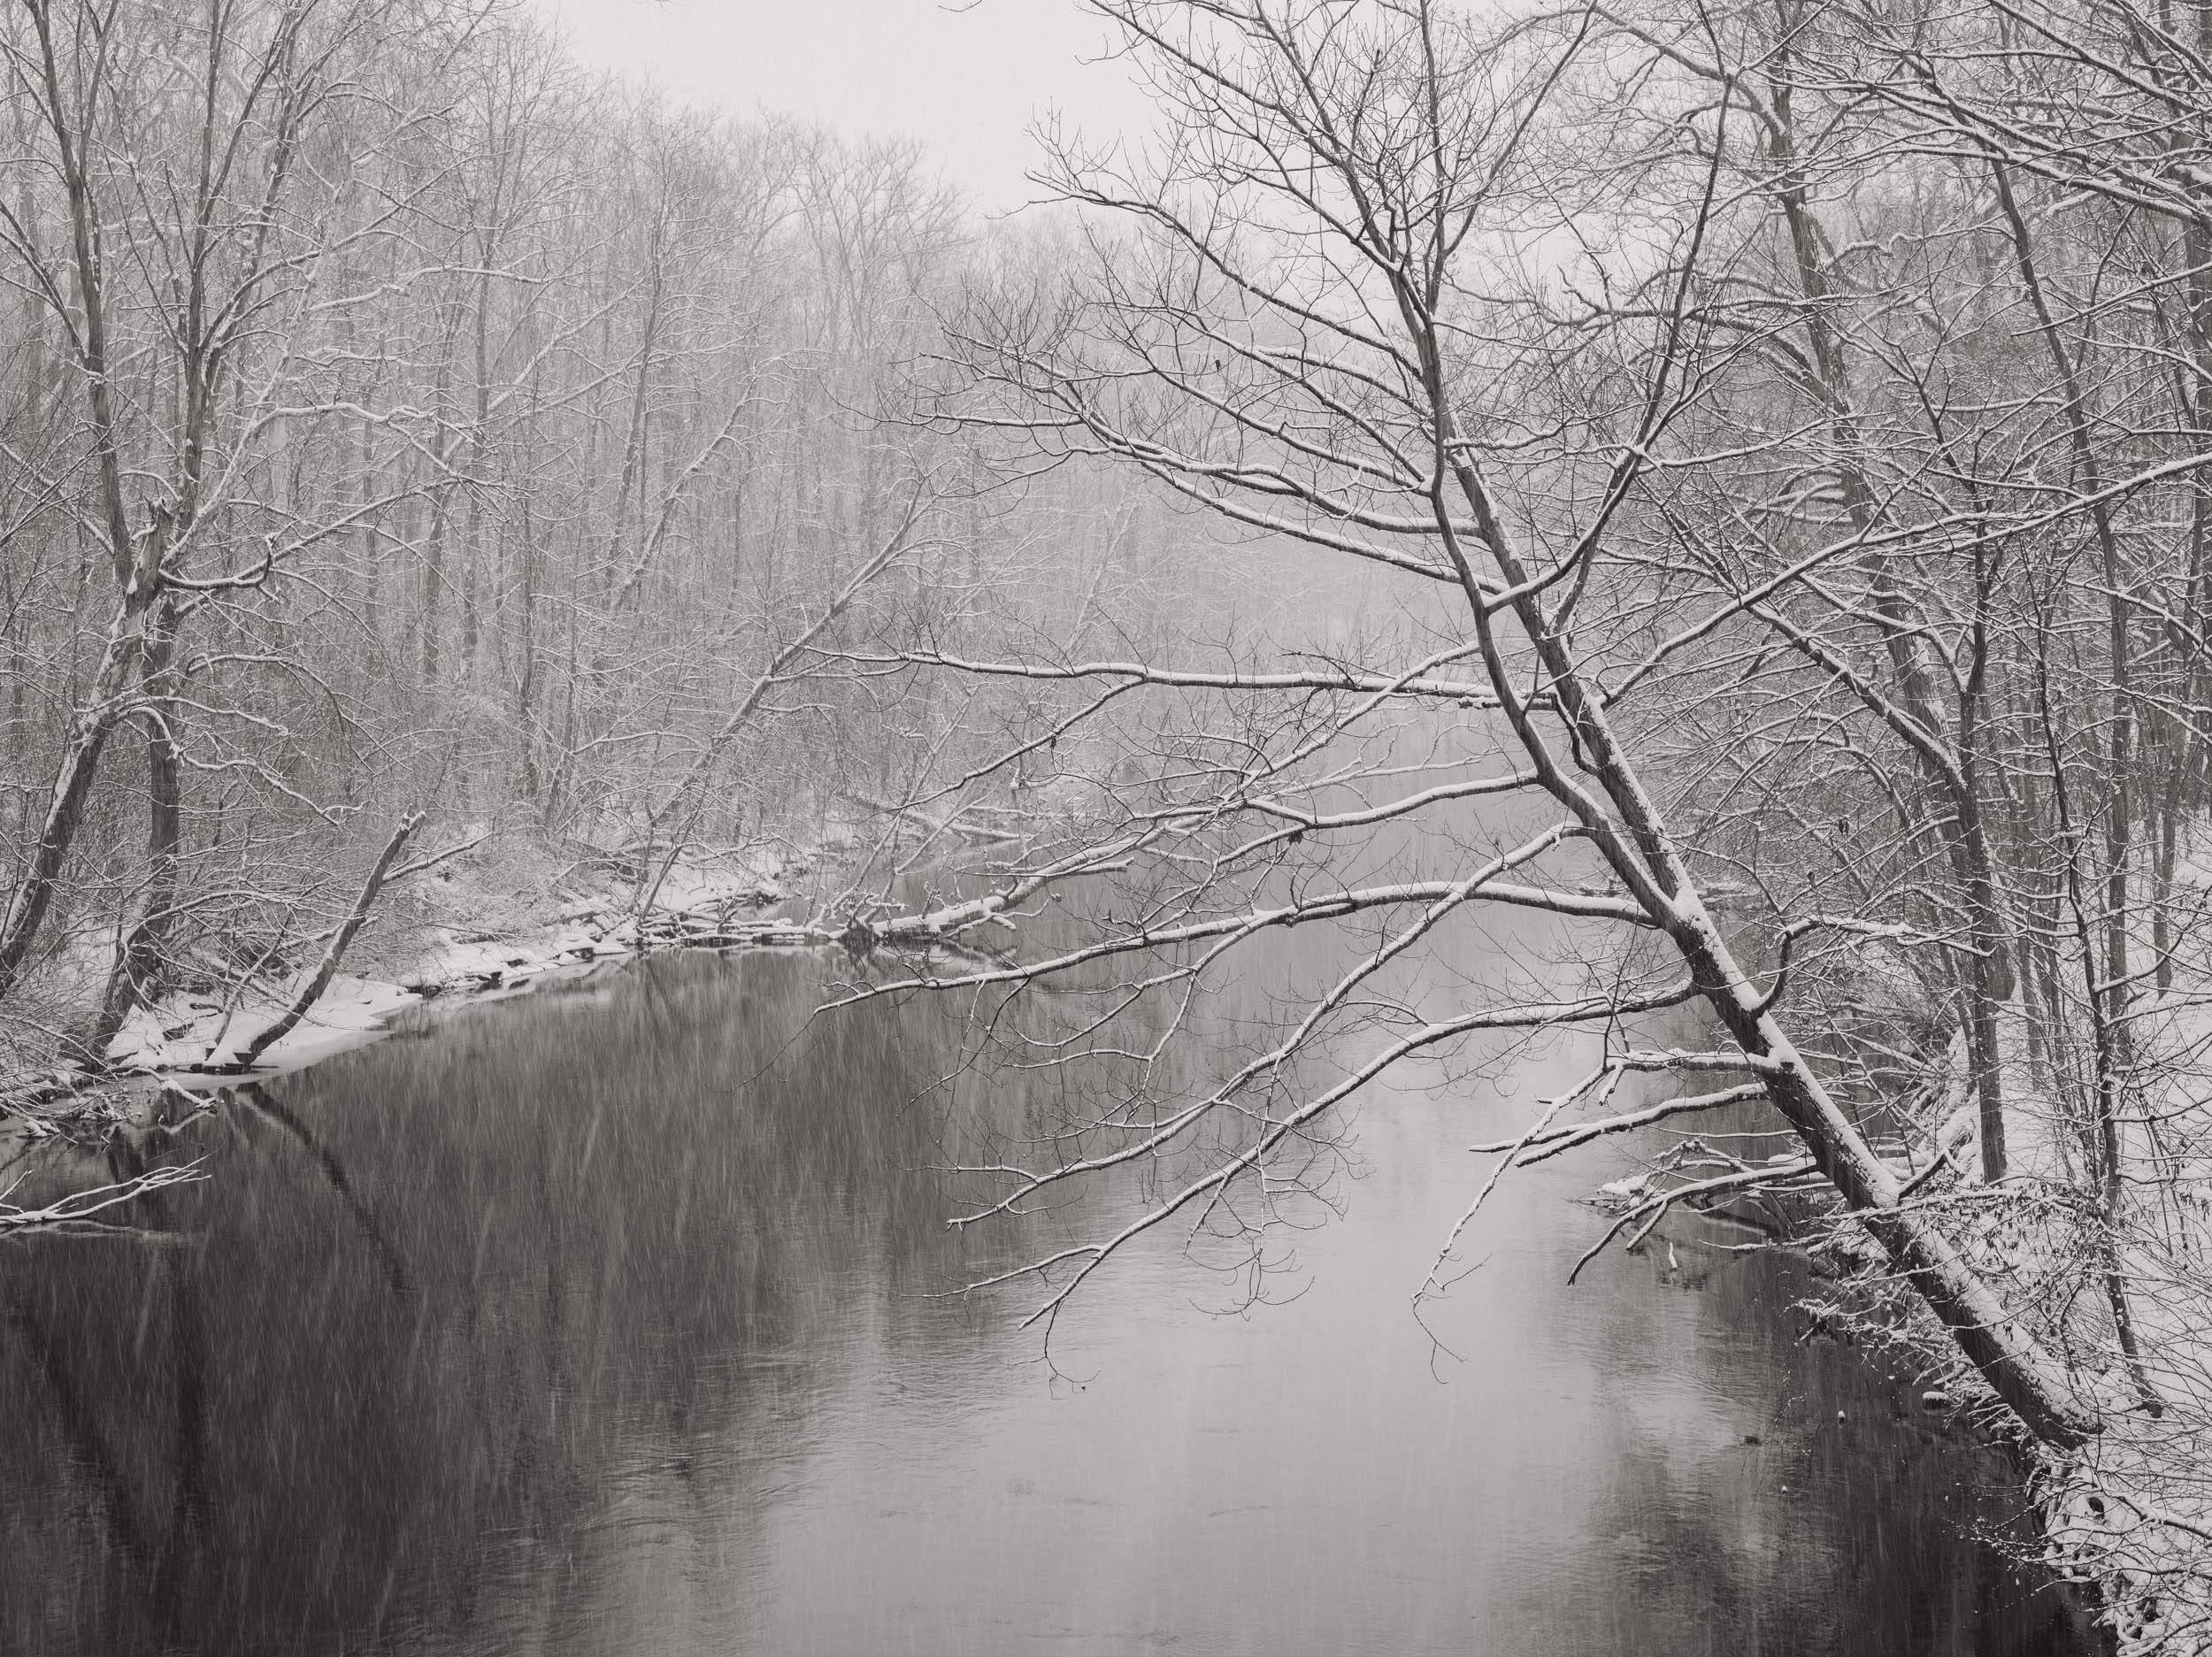 RIVER IN WINTER. On this wintry day I brought out my camera and took a drive down Haggerty into the lower Huron Metro Park looking for something beautiful to share. Michigan Landscape Photography.